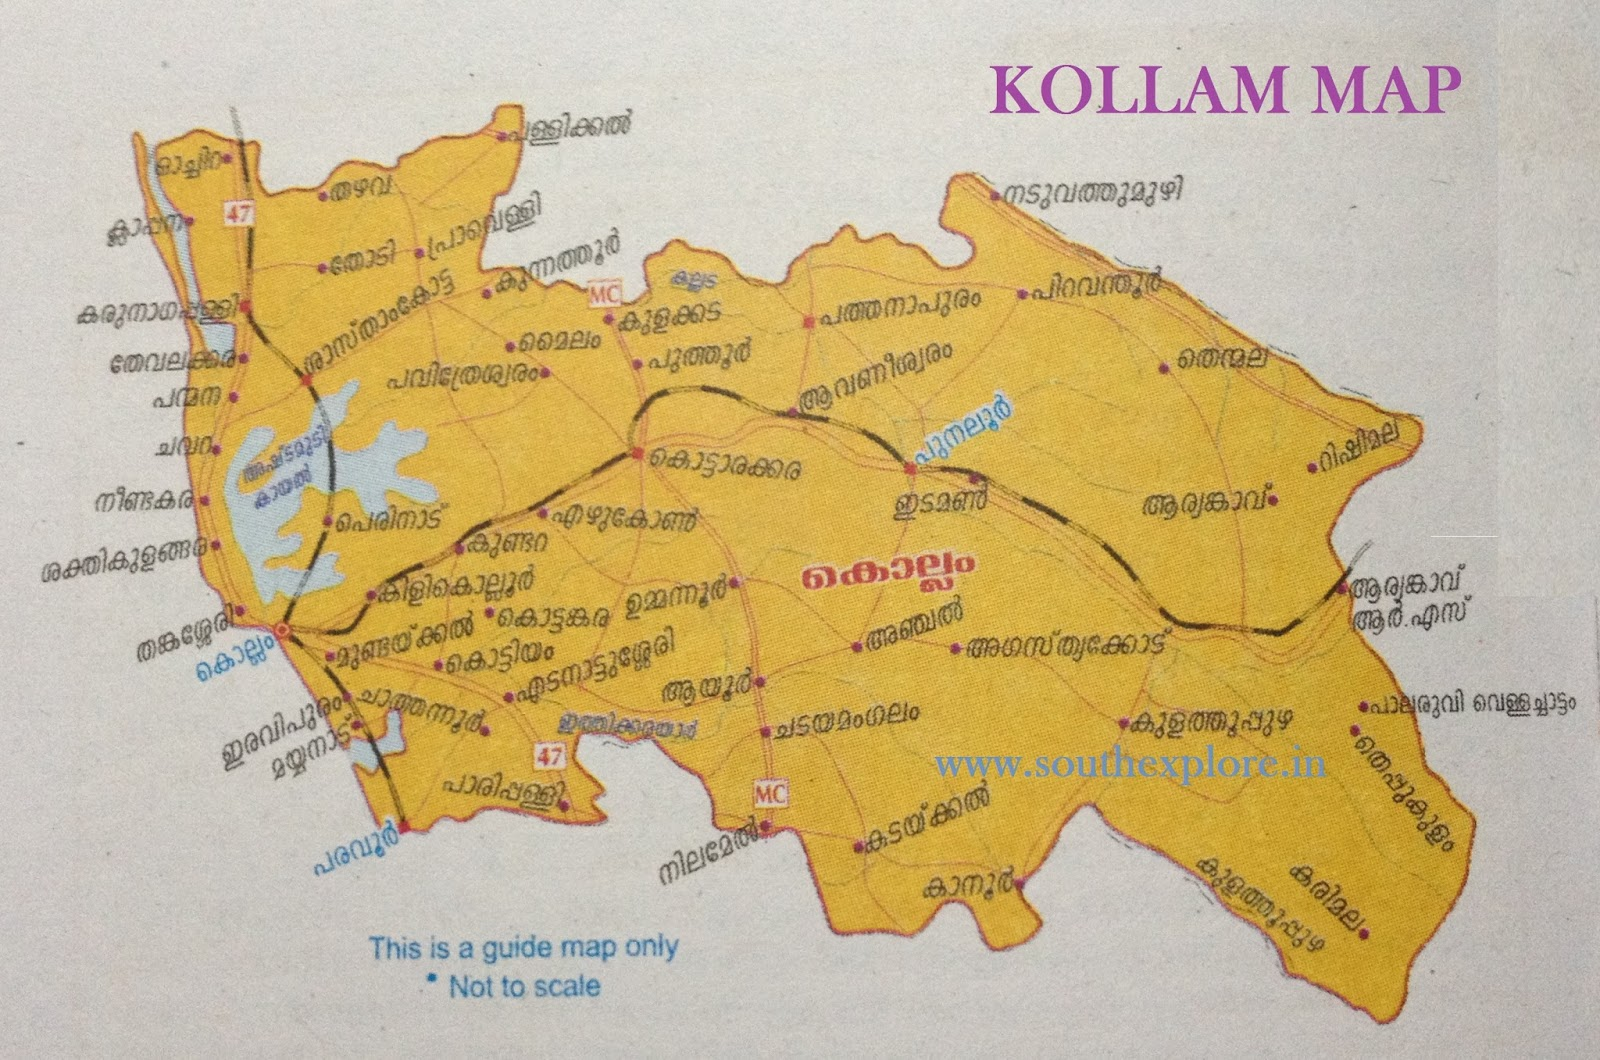 KOLLAM TOURISM MAP – South India Map With Tourist Places